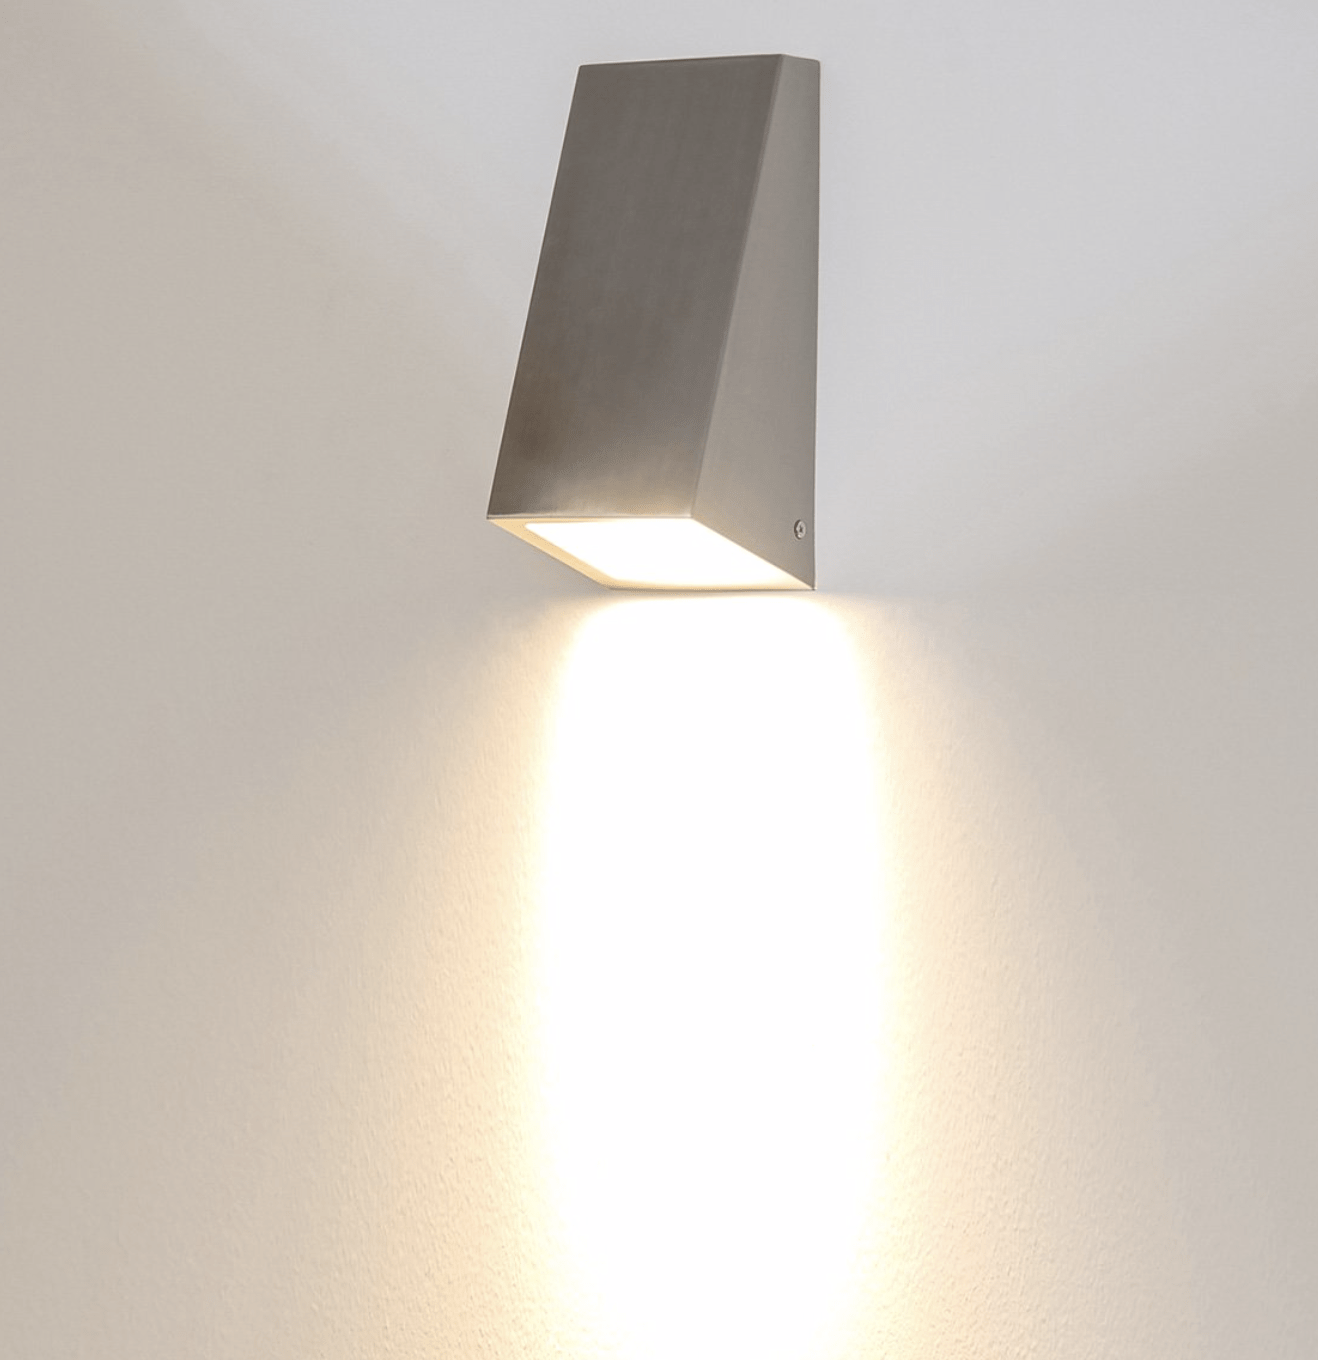 Exterior Wall Light Taper - Large Wall Wedge